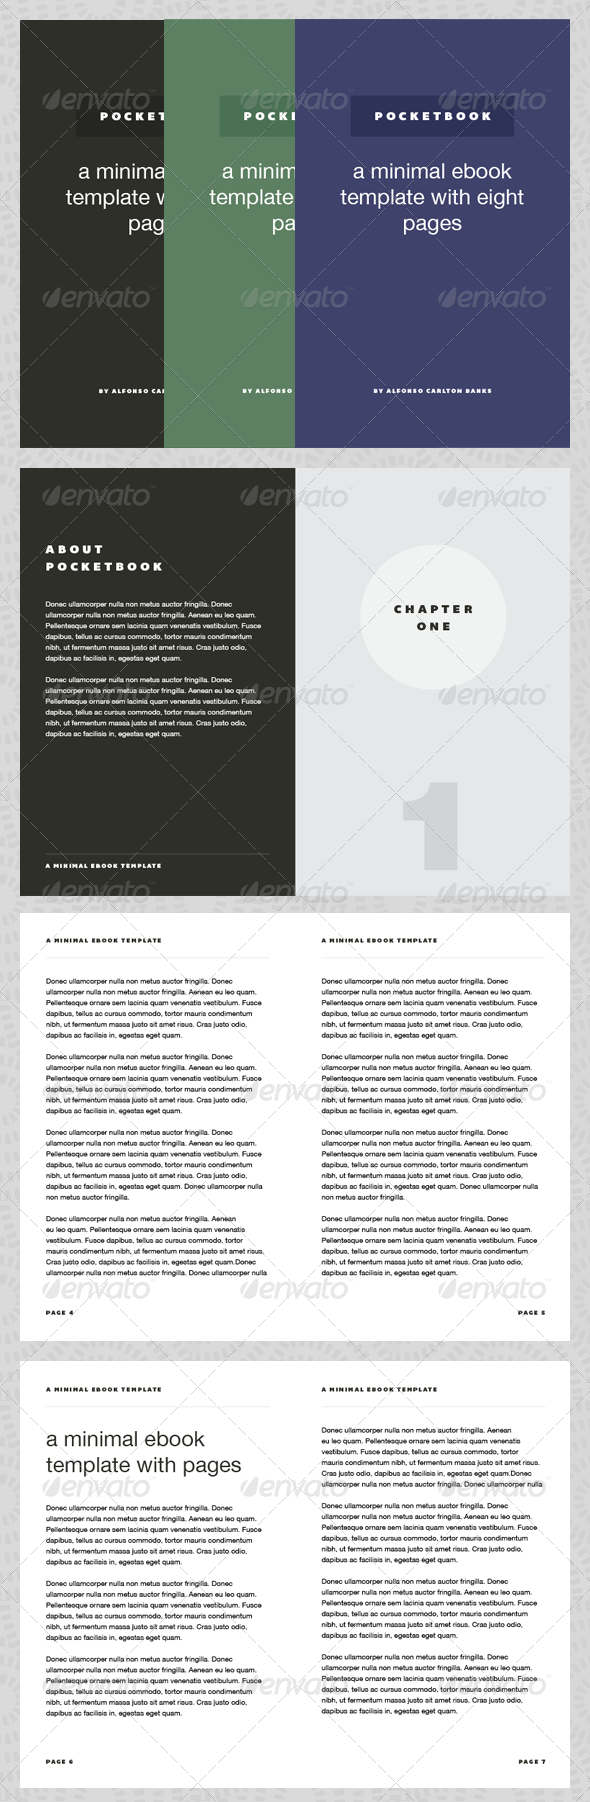 Comfortable Template Ebook Images - Entry Level Resume Templates ...